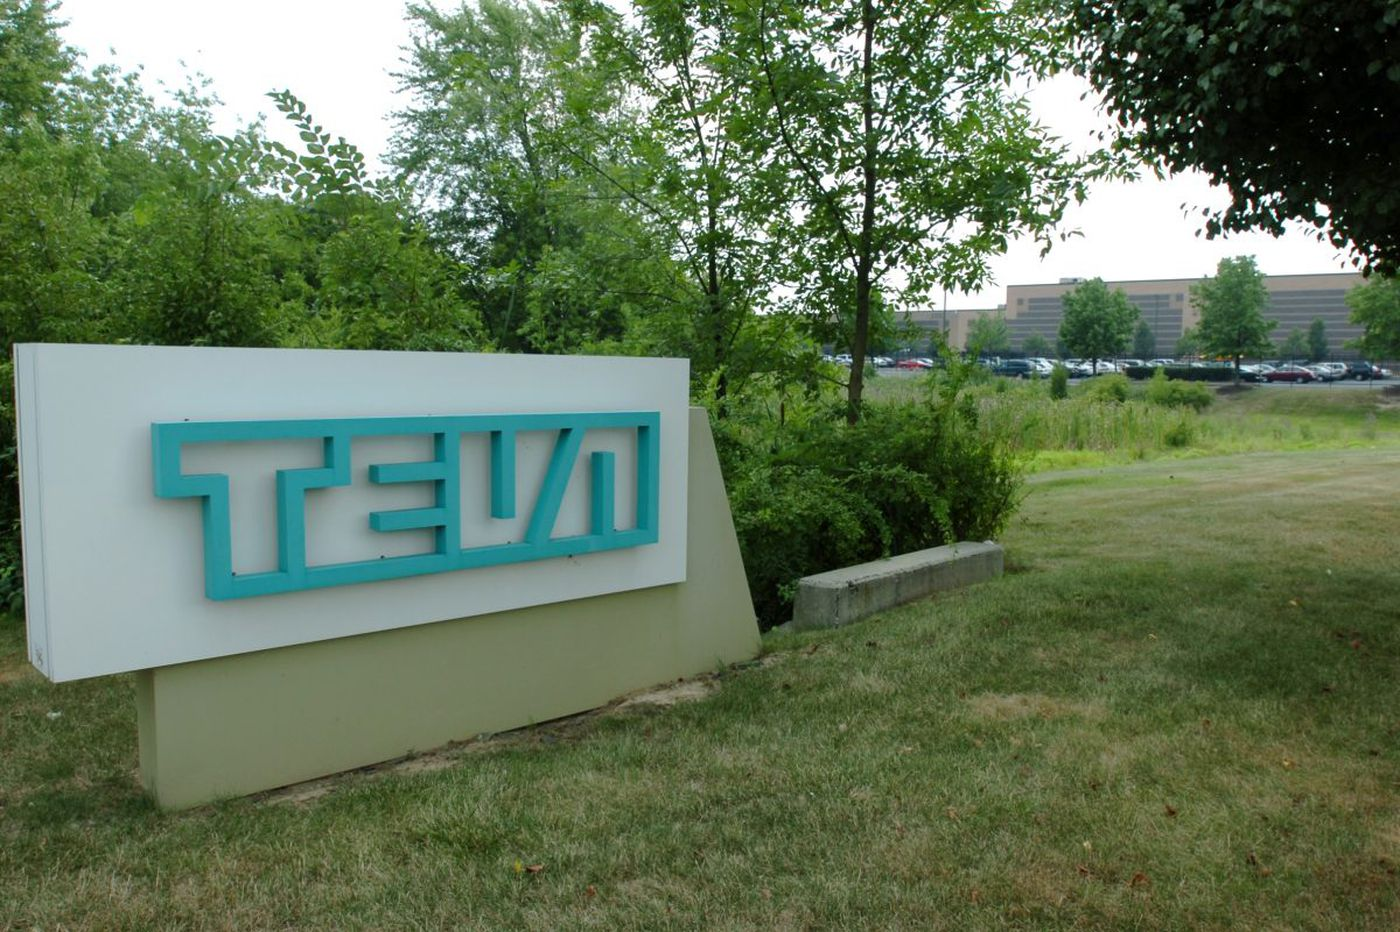 Teva announces 14,000 layoffs globally in next two years, plans to close or sell multiple plants